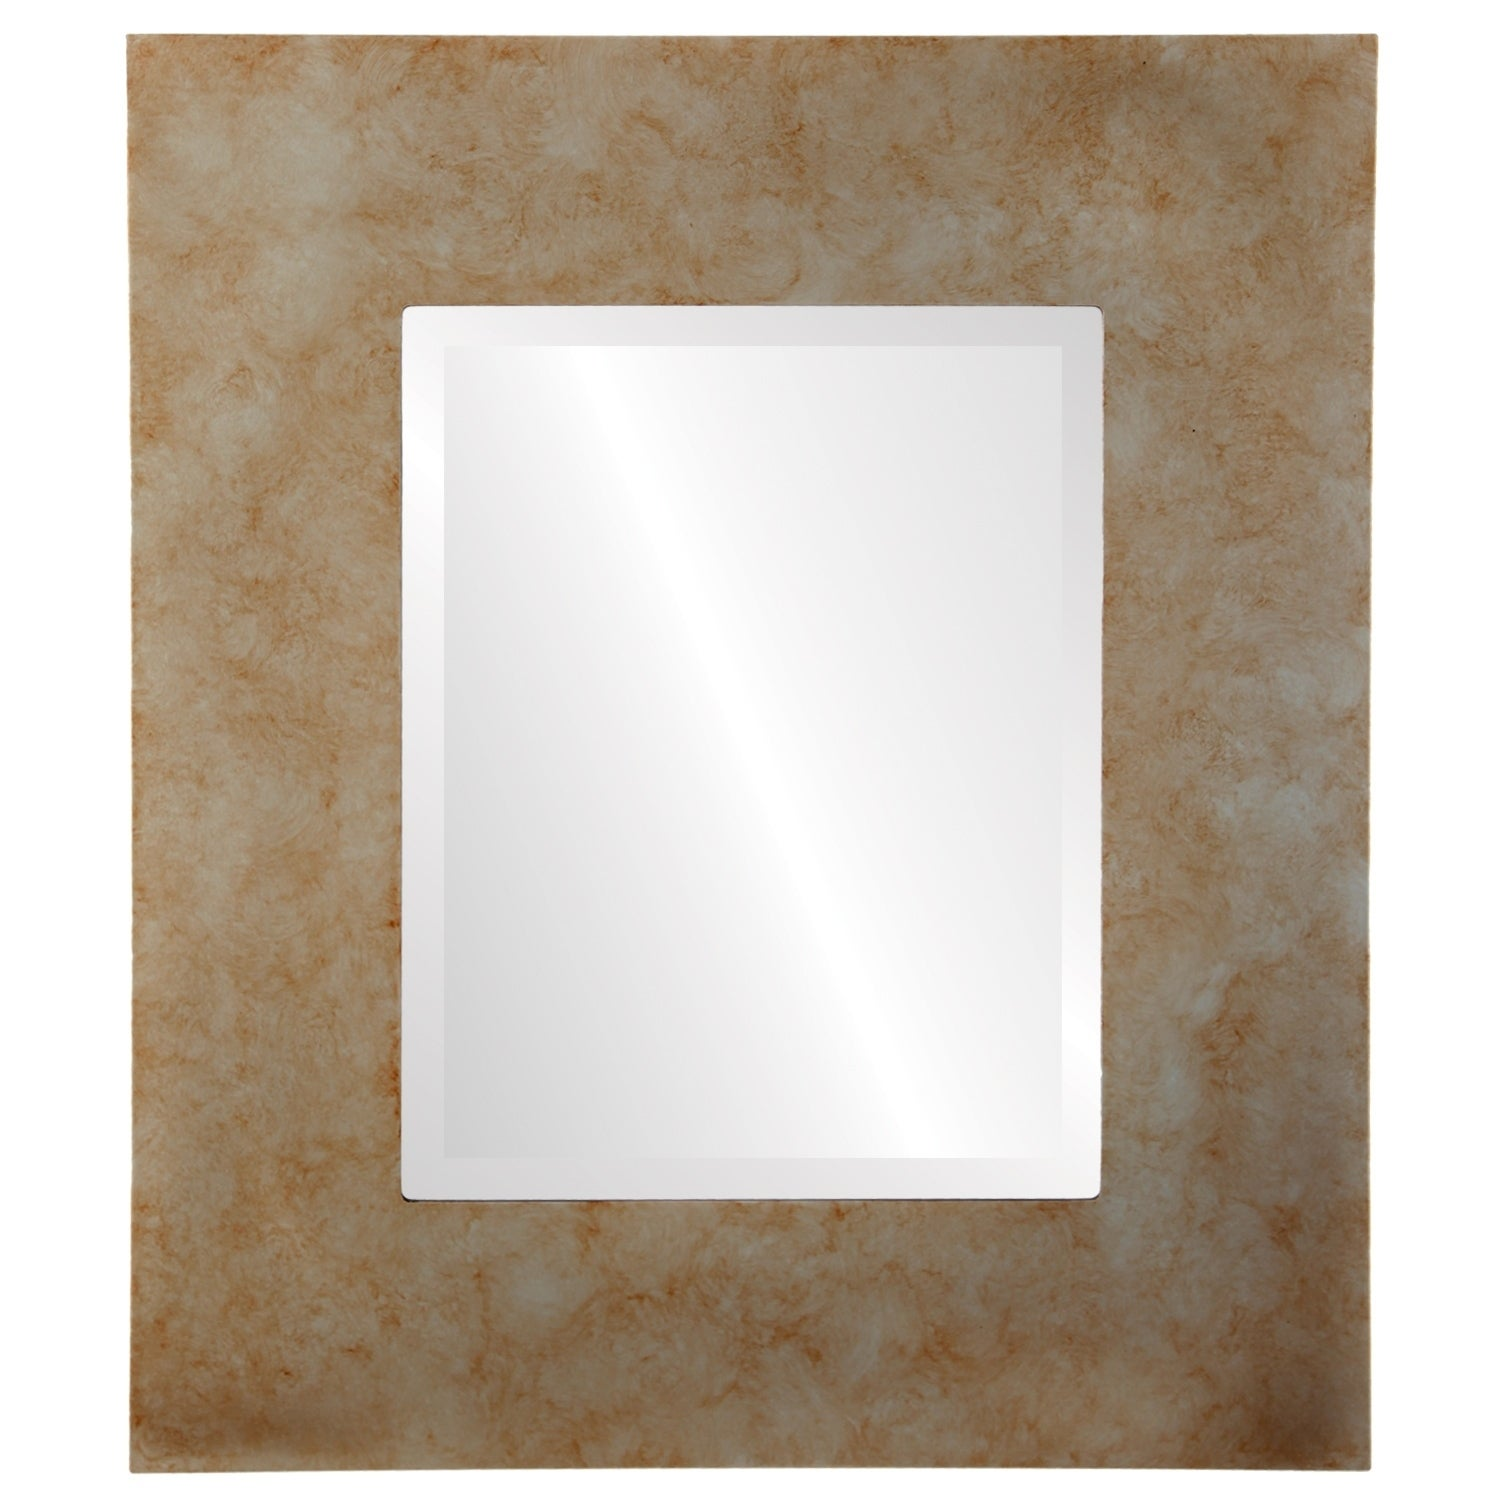 Tribeca Framed Rectangle Mirror in Burnished Silver - Antique Silver (Medium (15-32 high) - 23x27)